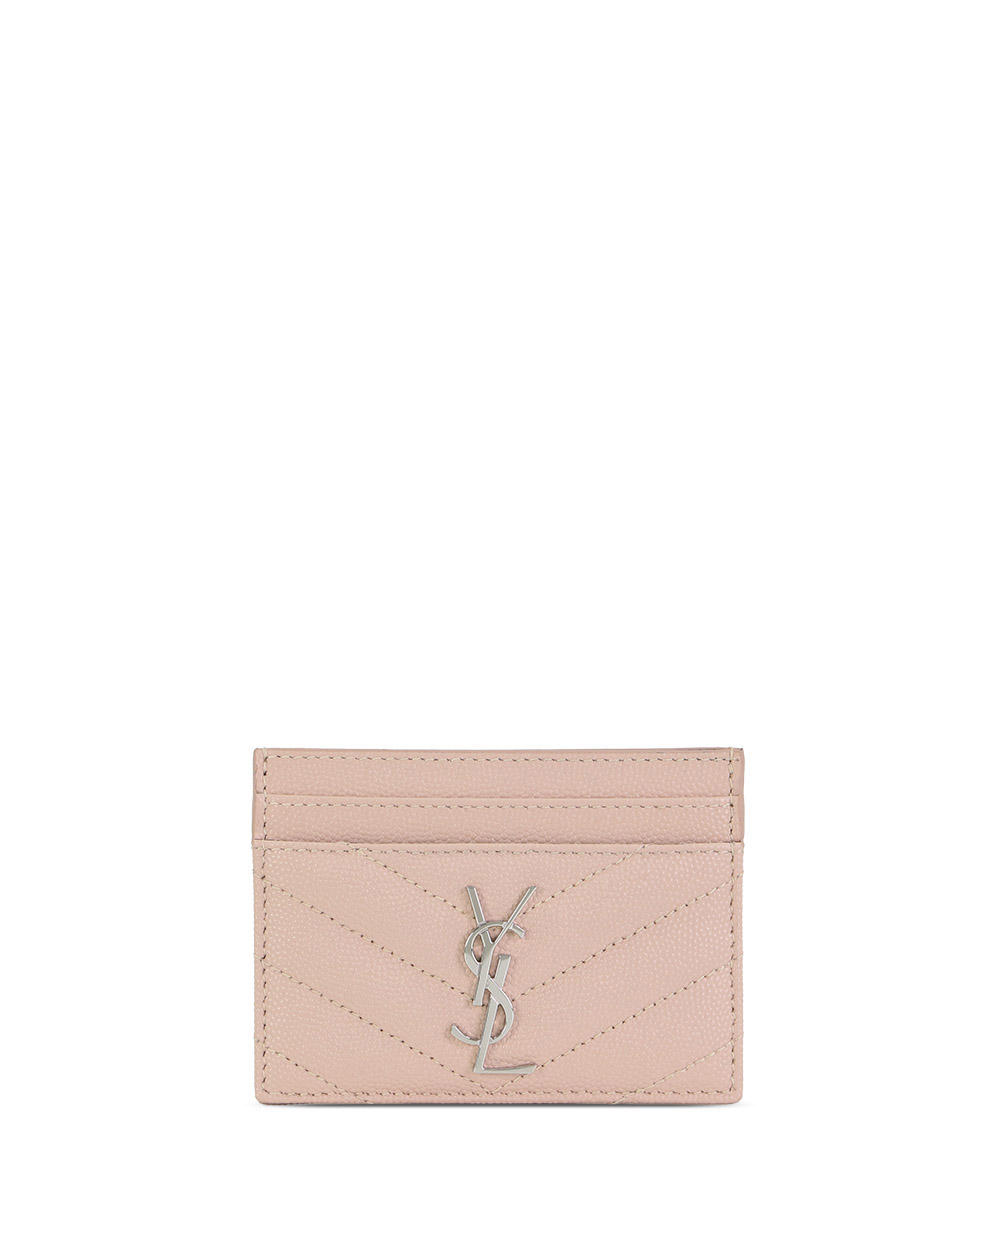 Monogram Quilted Grained Leather Cardholder